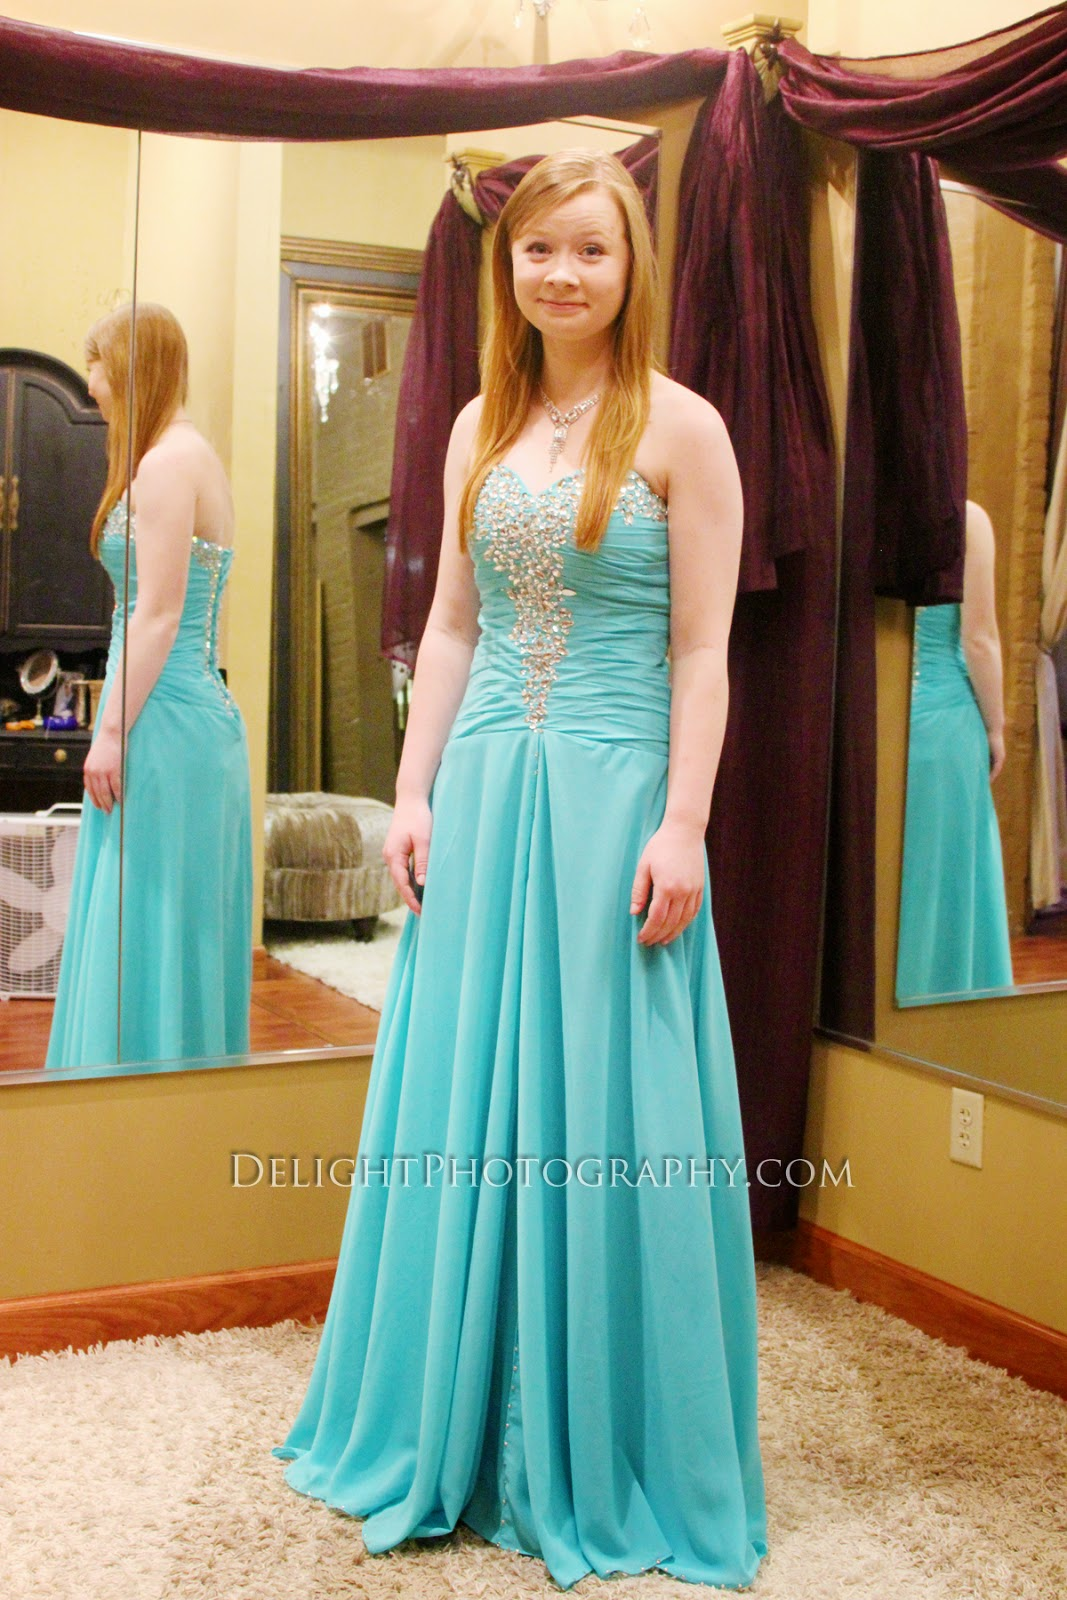 Amazing Alterations - Perfect for Prom and Wedding Dress Alterations ...